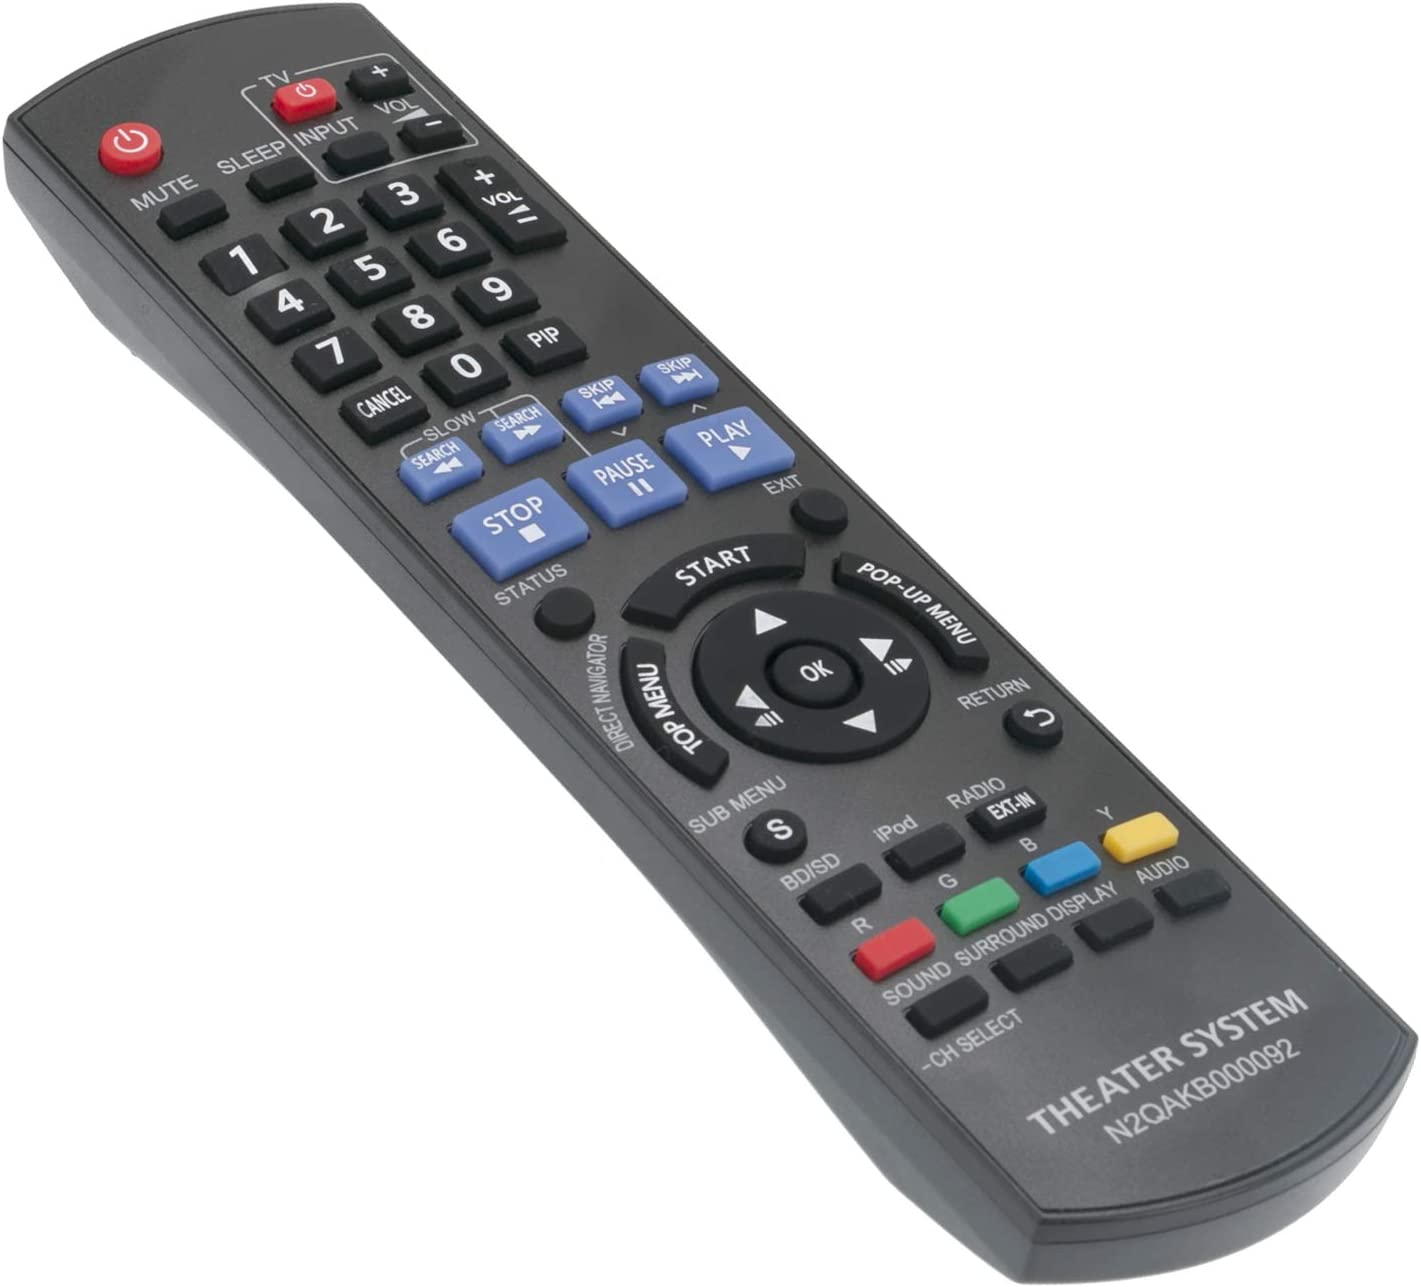 New N2QAKB000092 Replace Remote Control fit for Panasonic Blu-ray Disc Home Theater Sound System SC-BT228 SA-BT228 SB-HF480 SB-HC480 SB-HS480 SB-HW480